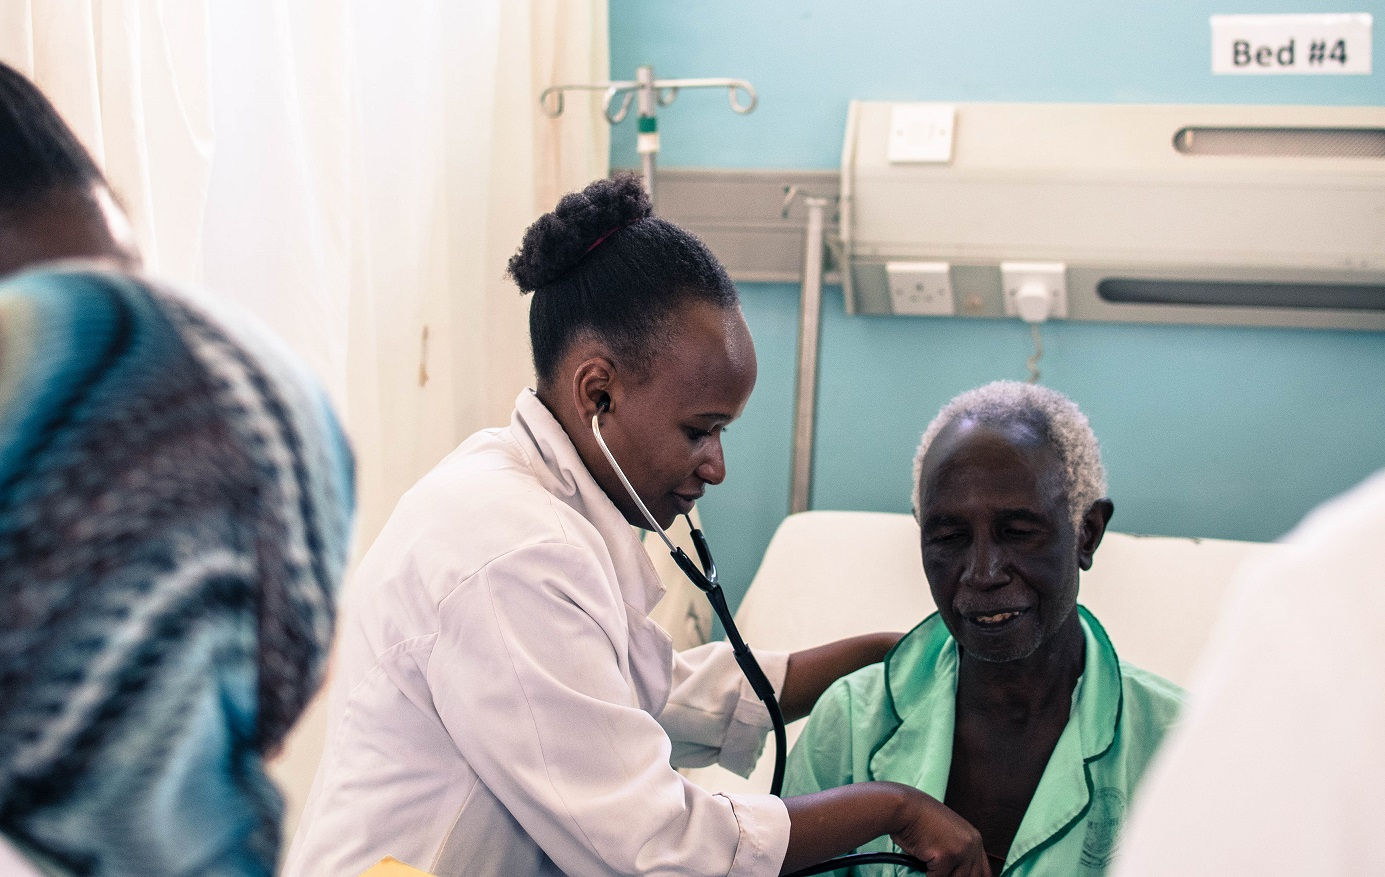 A patient being treated in the Cardiac Care Unit of Moi Teaching & Referral Hospital